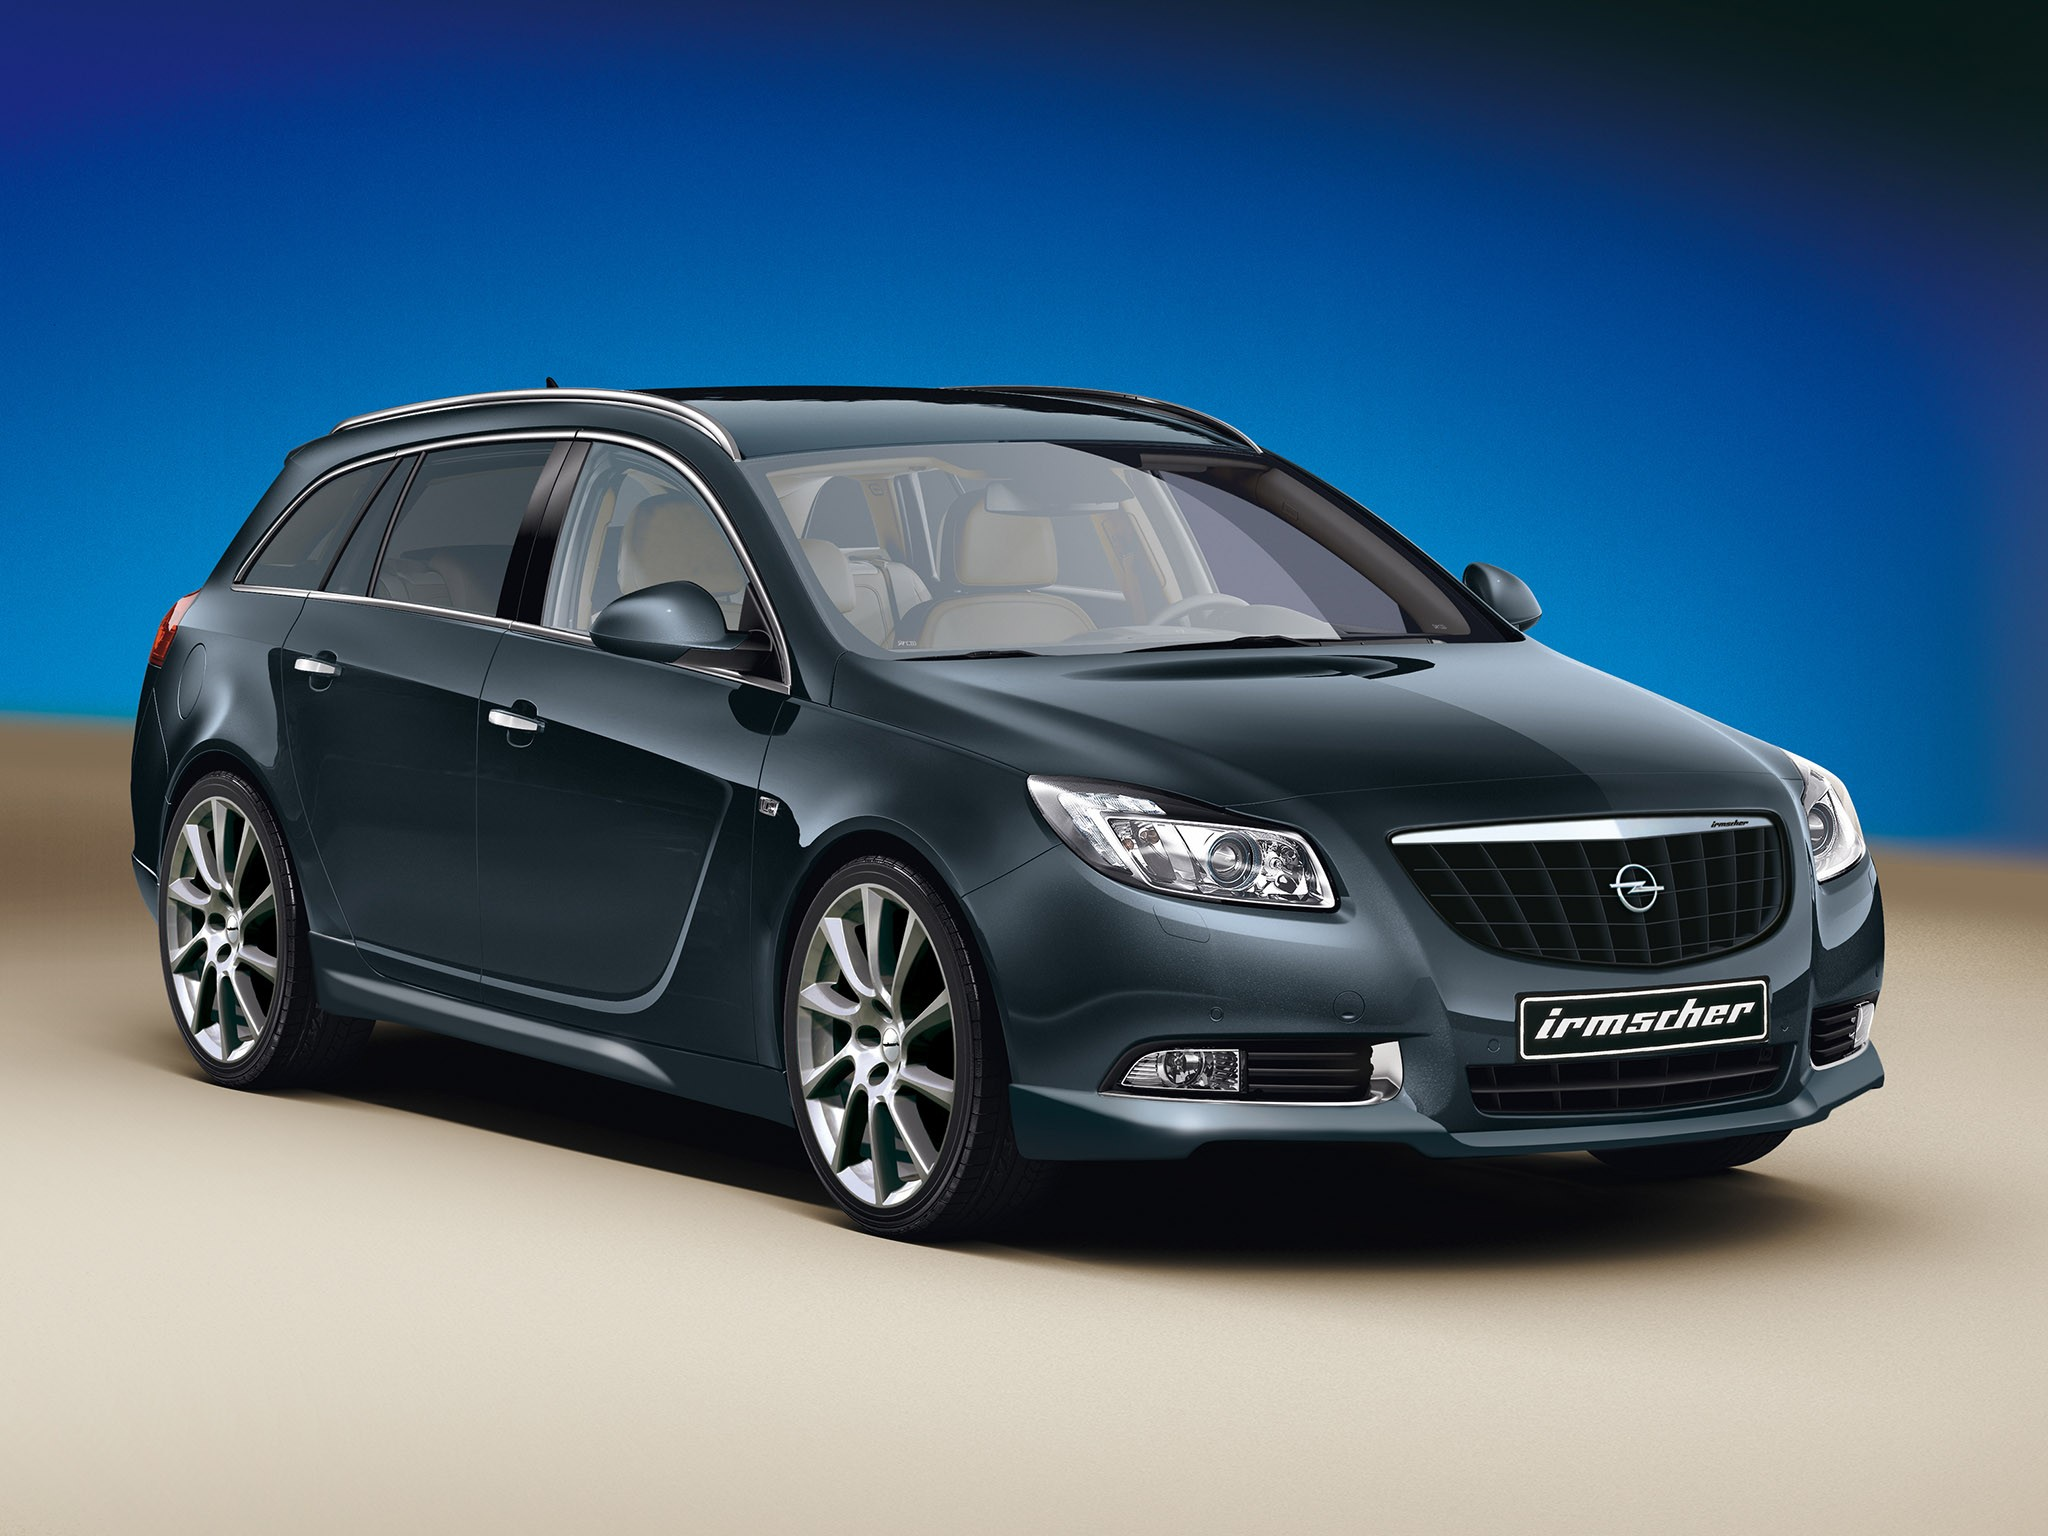 2010 Irmscher Opel Insignia Sports Tourer